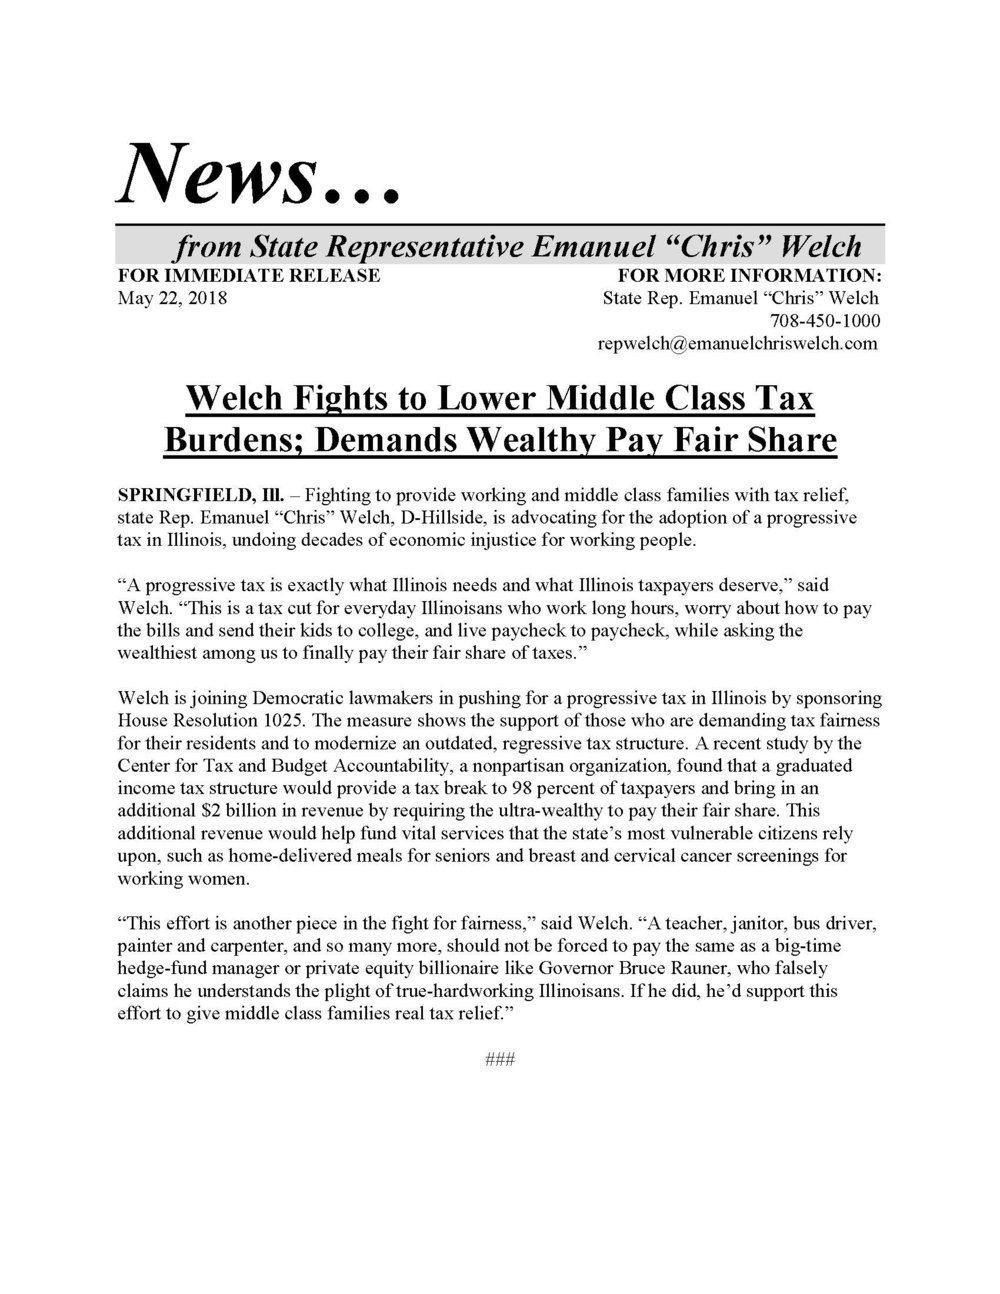 Welch Fights to Lower Middle Class Tax Burdens  (May 22, 2018)